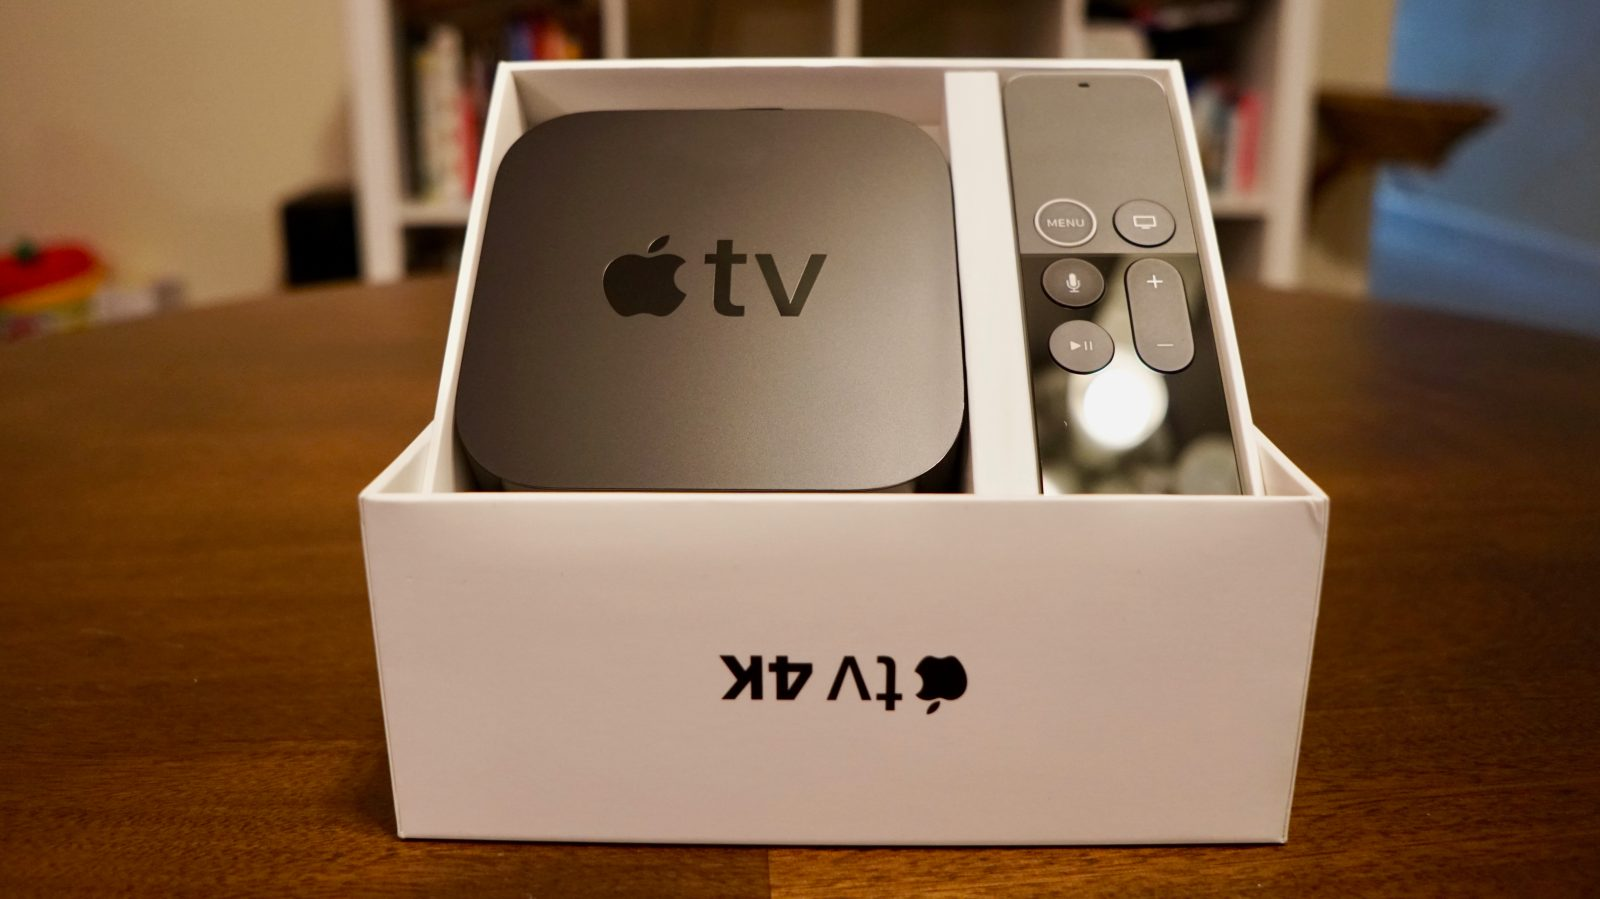 Hands-on with Apple TV 4K and the new Siri Remote